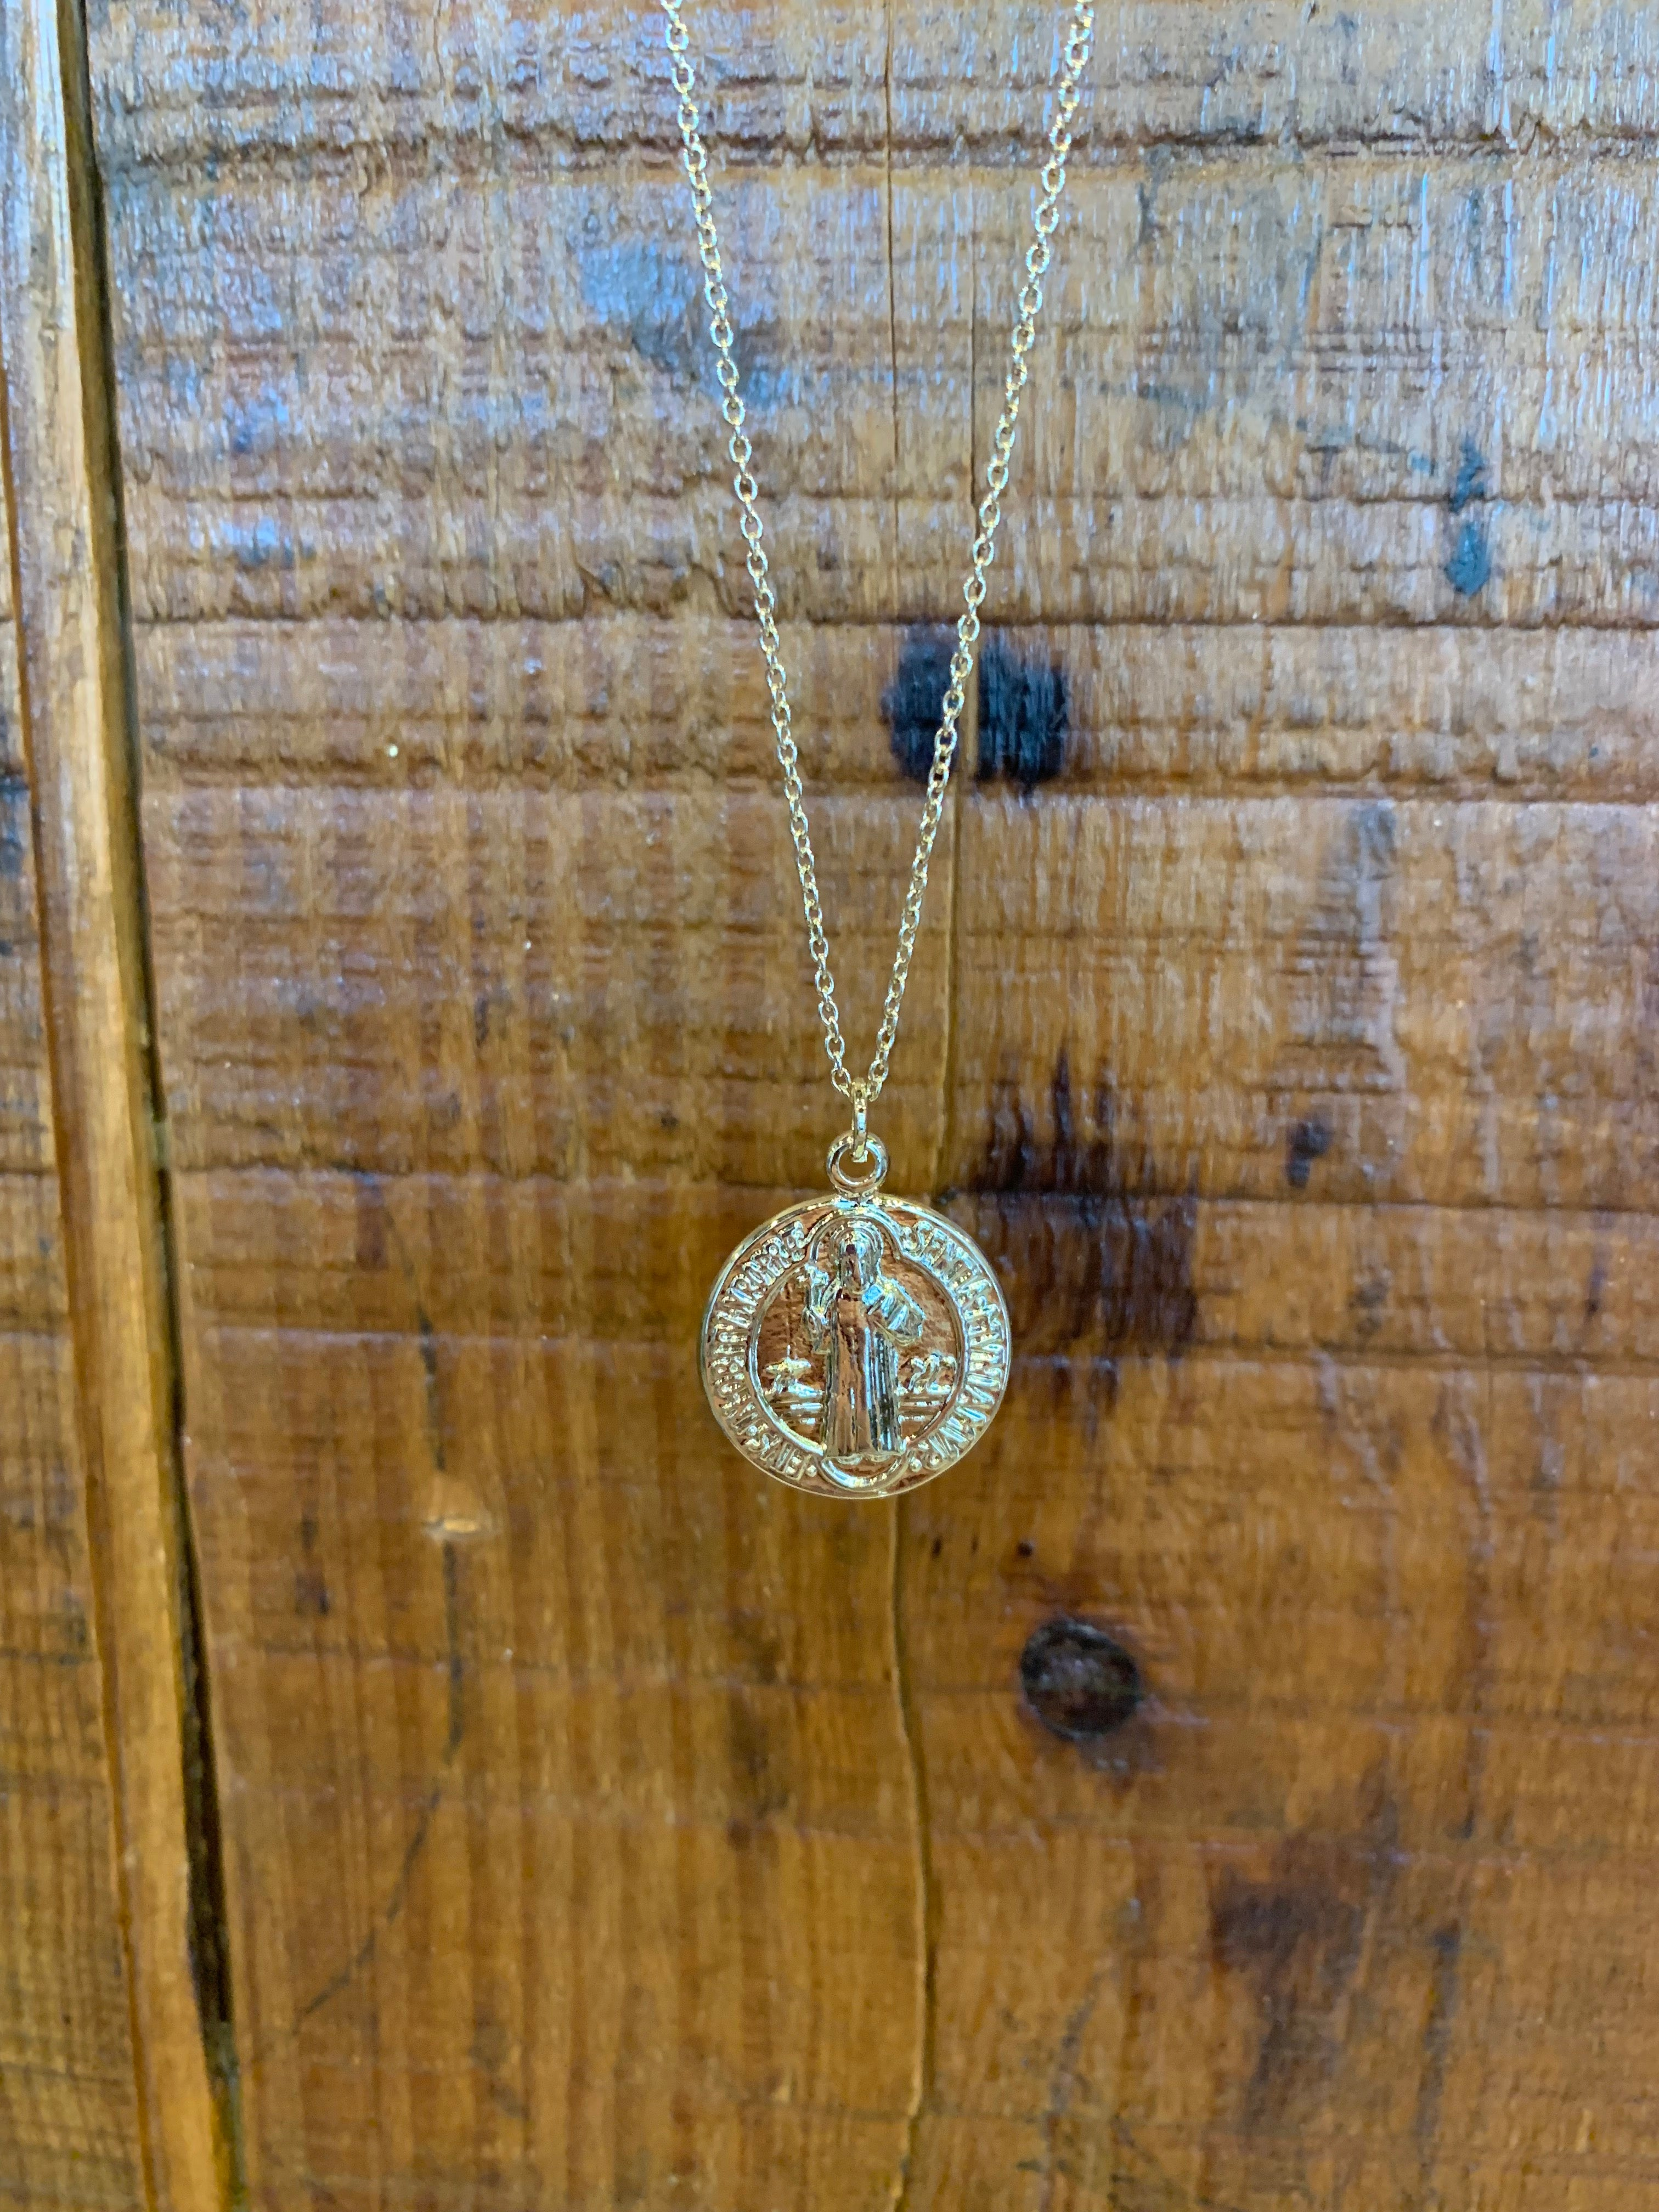 My Lucky Gold Coin Necklace